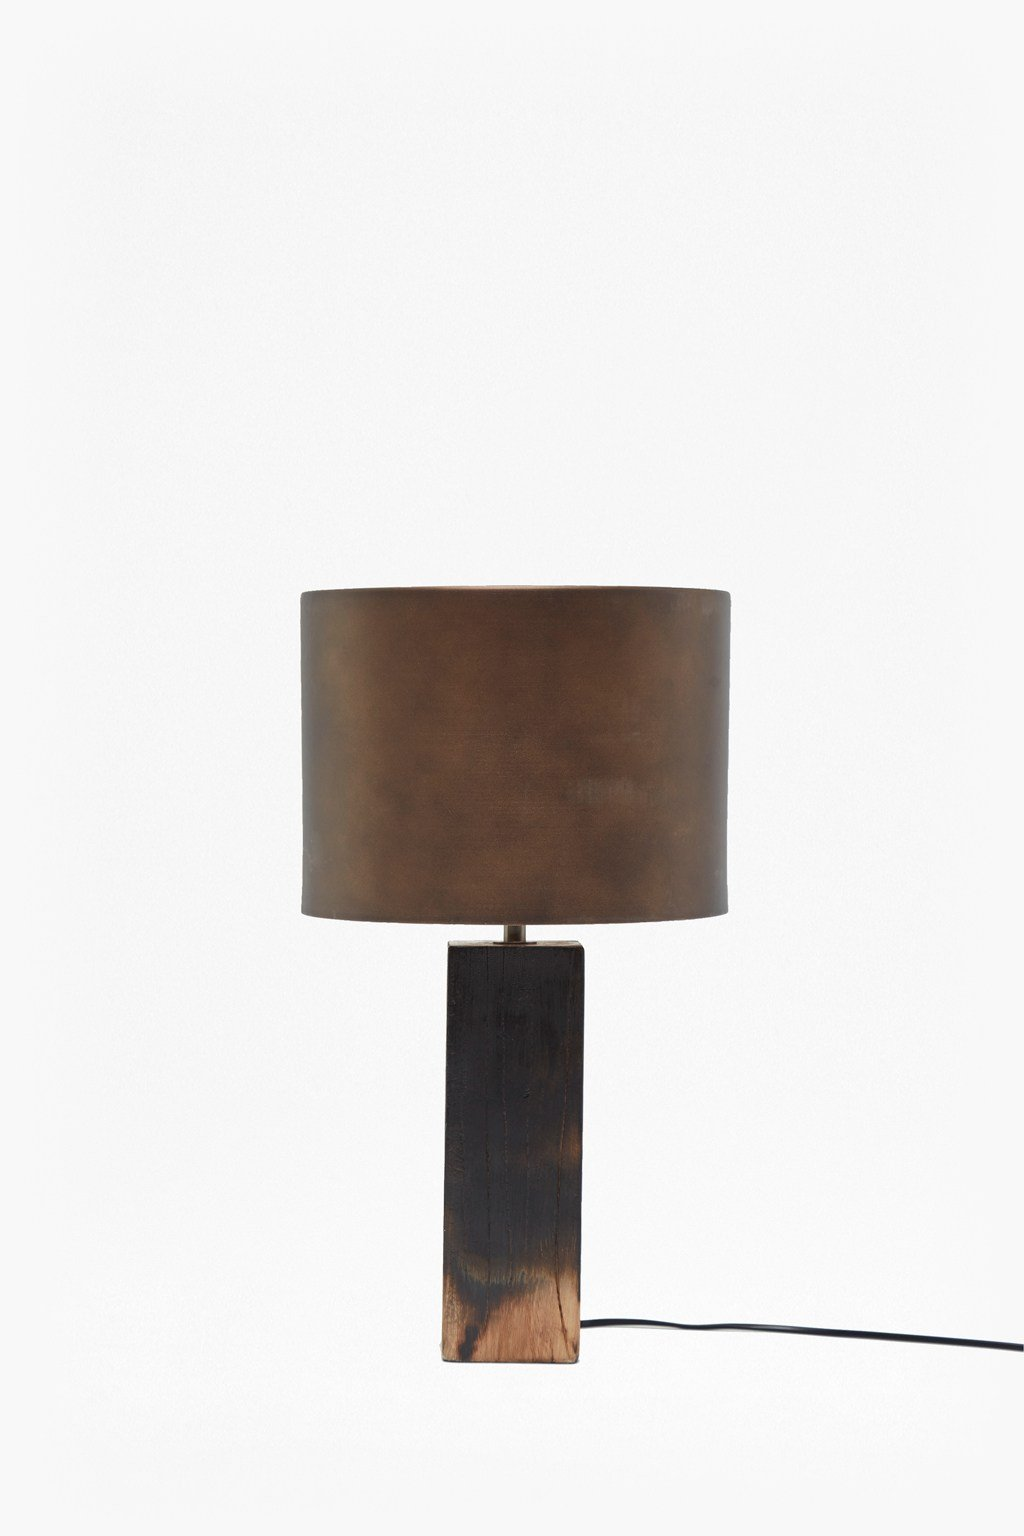 Burnt Wood Ombre Table Lamp Loading Images